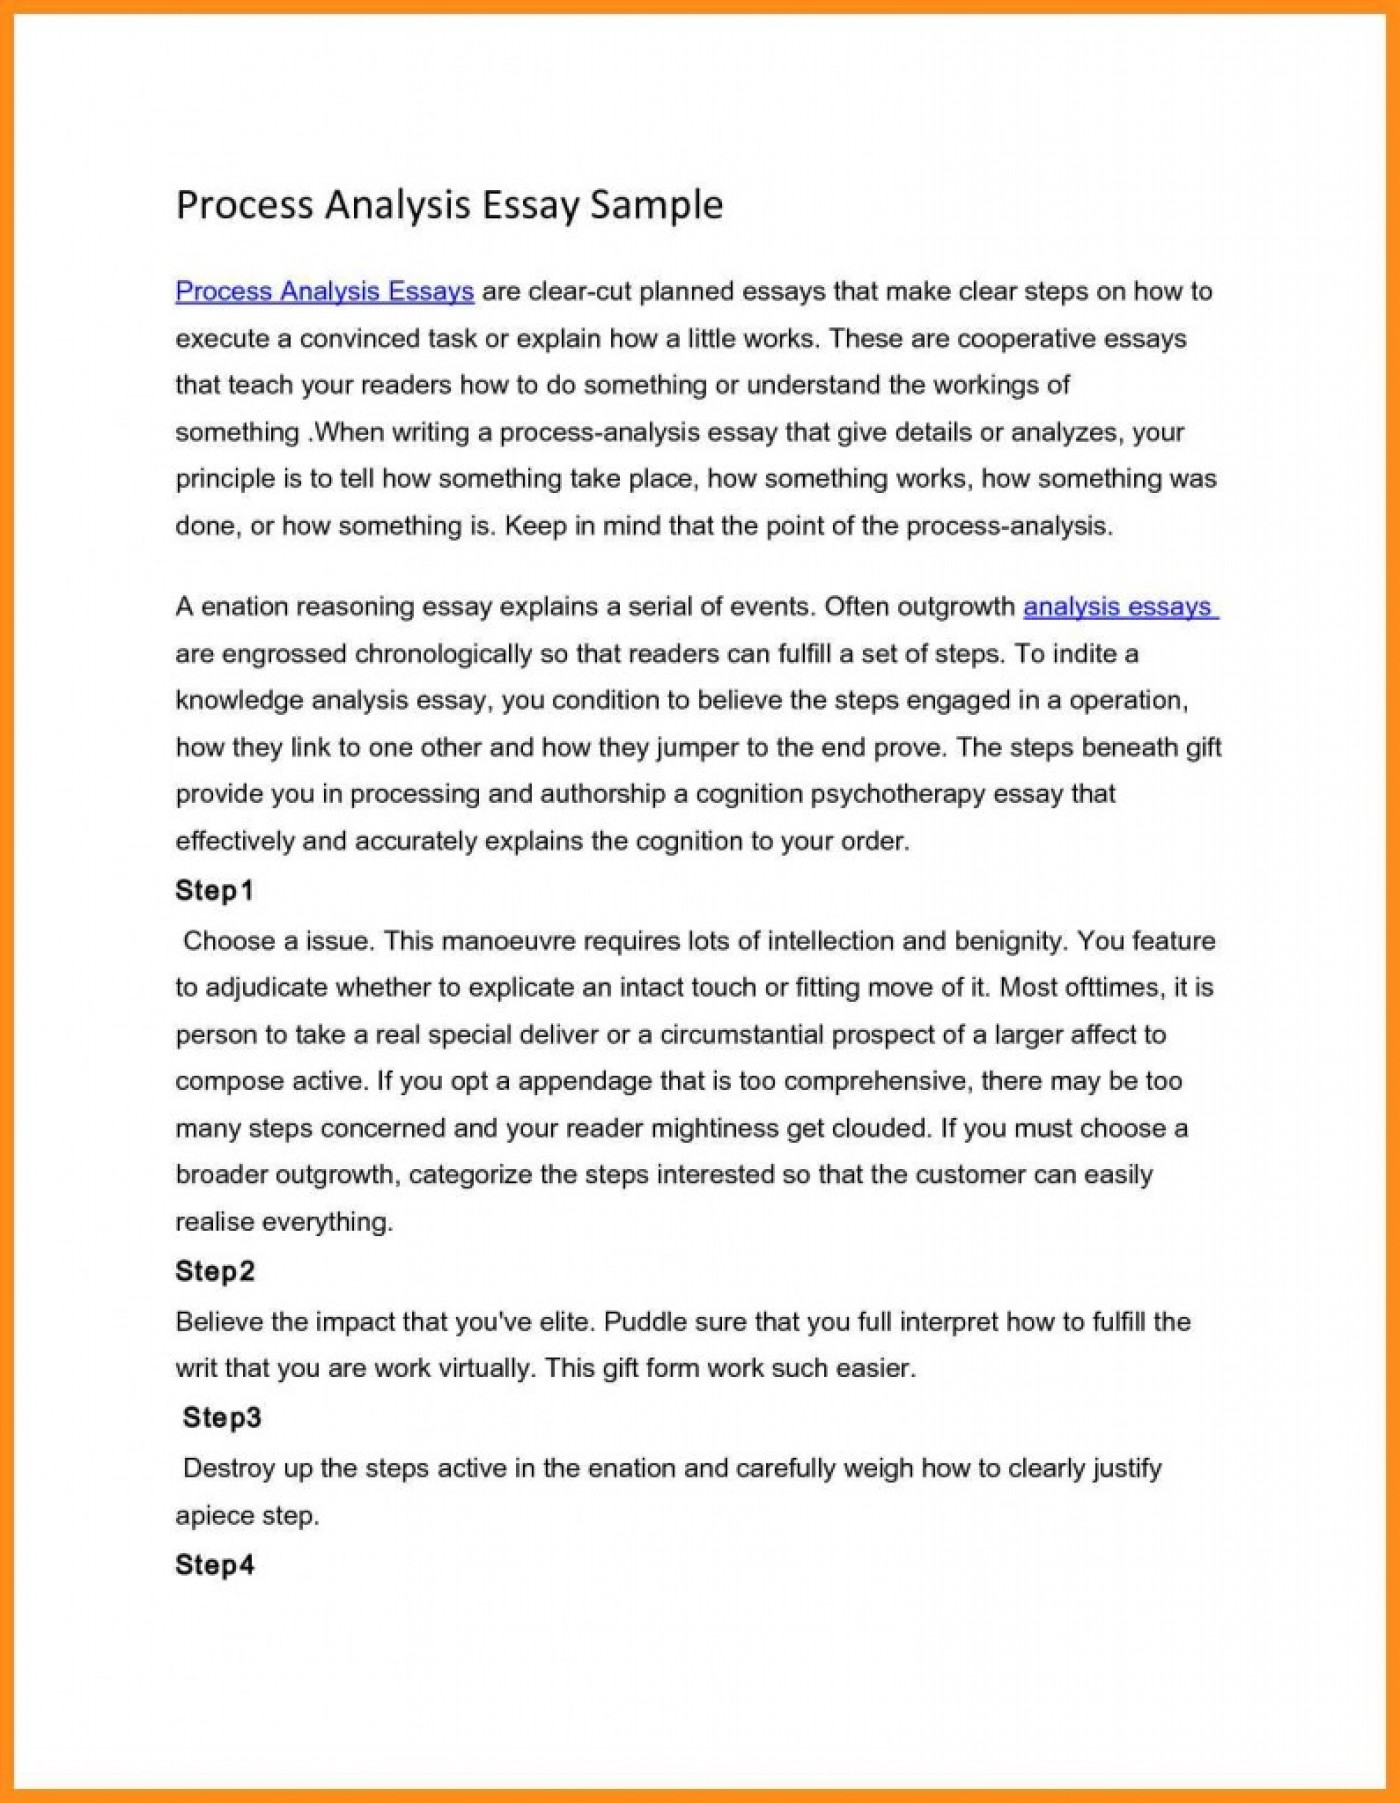 009 what is process essay example of paragraph analysis